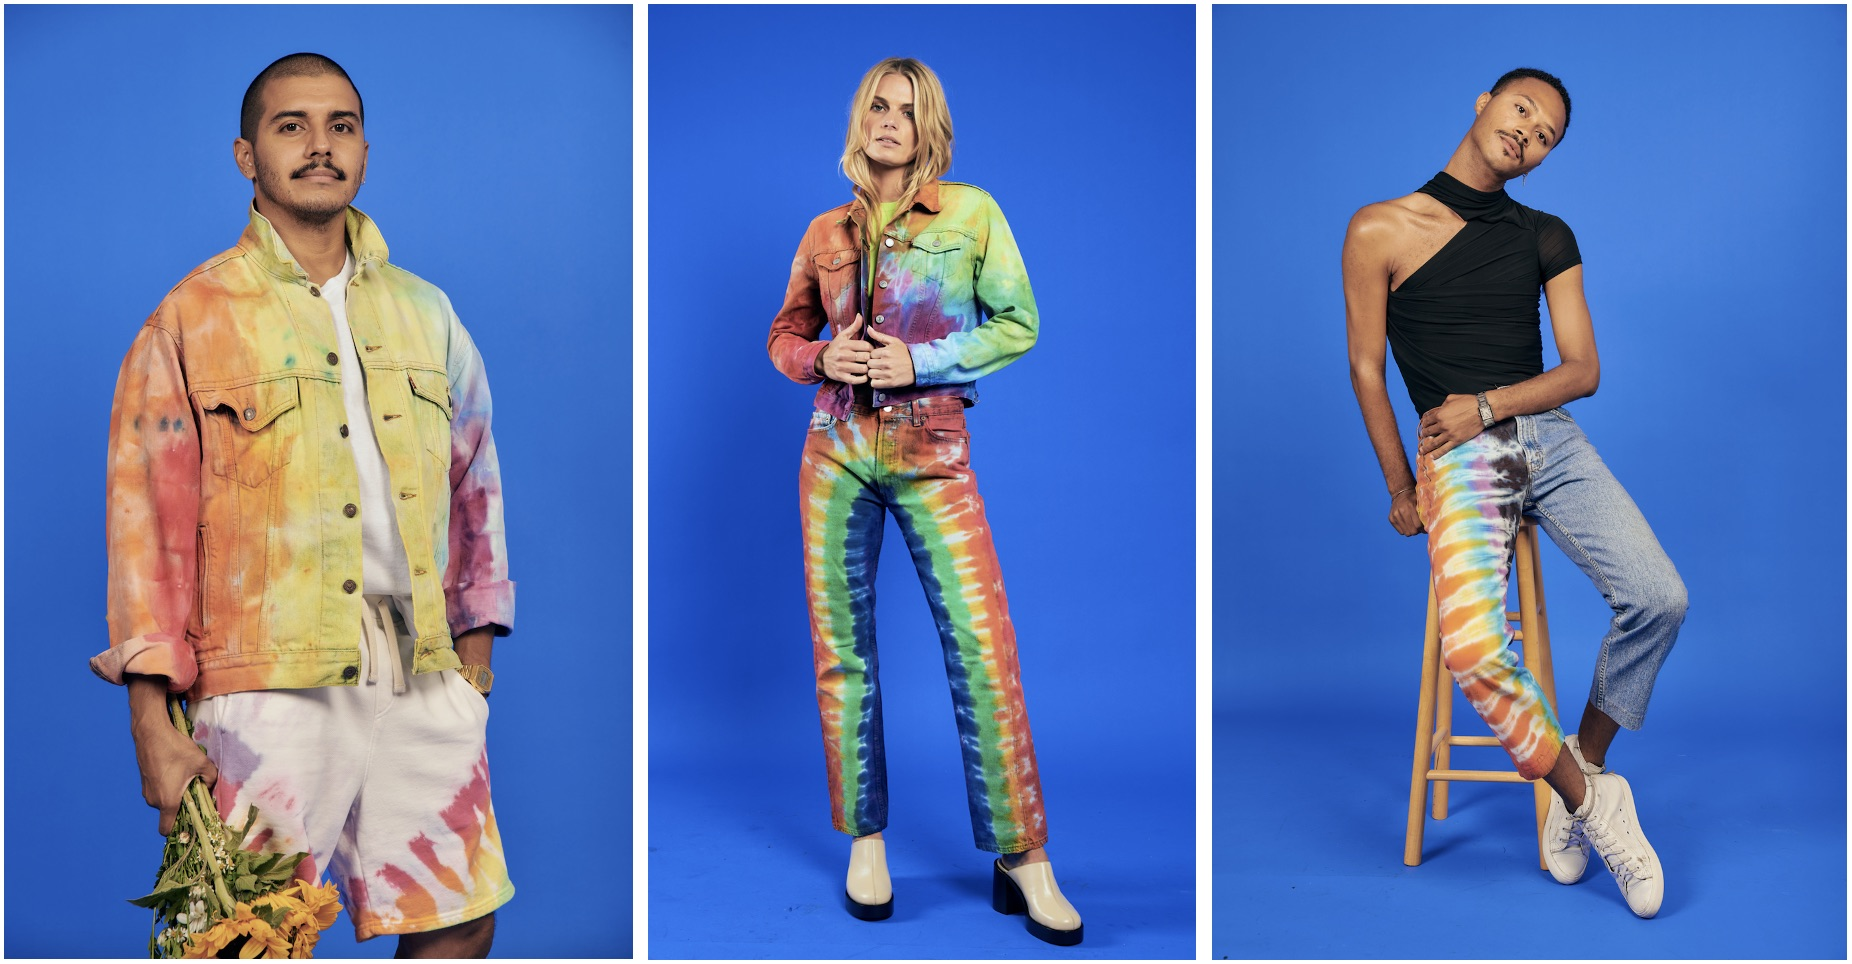 Brands launch collections and make donations for Pride, tapping artists that identify as LGBTQ+ to design items that can make a difference.